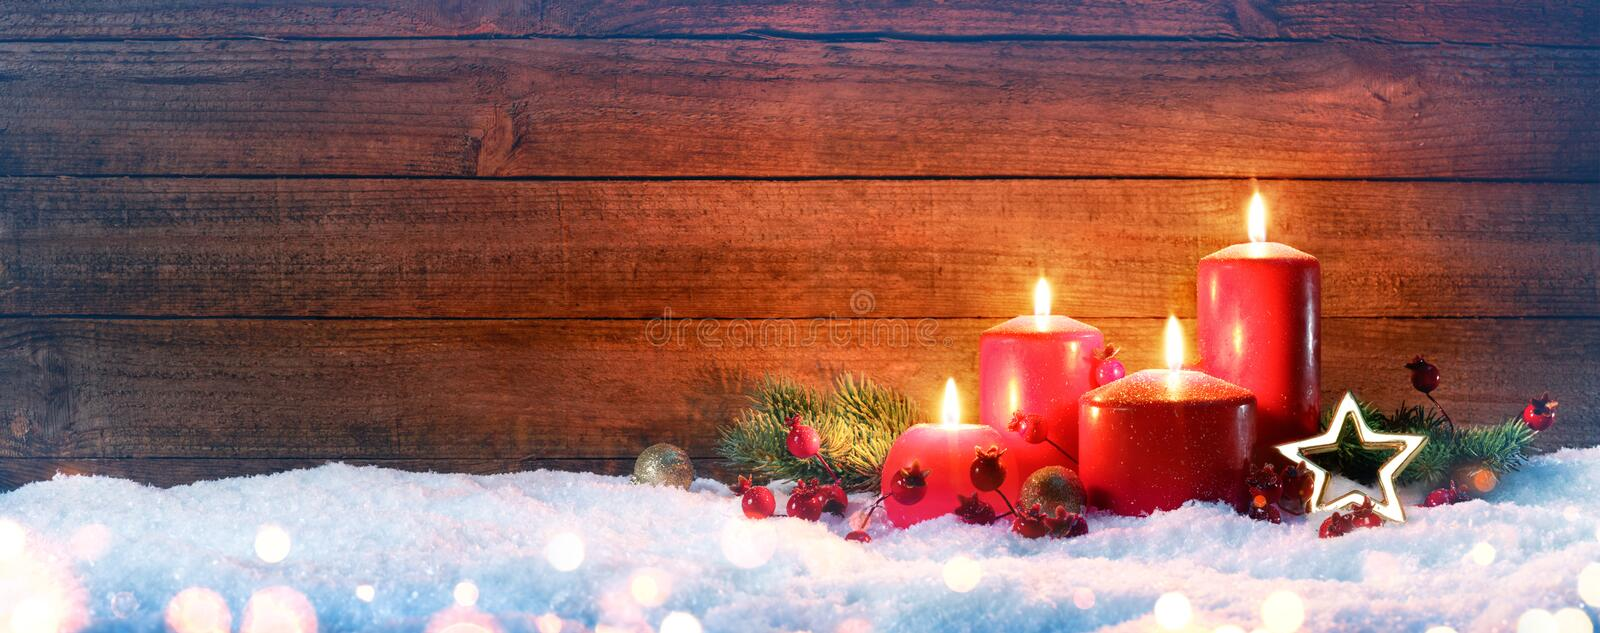 Advent Season - Four Red Candles On Snow stock image